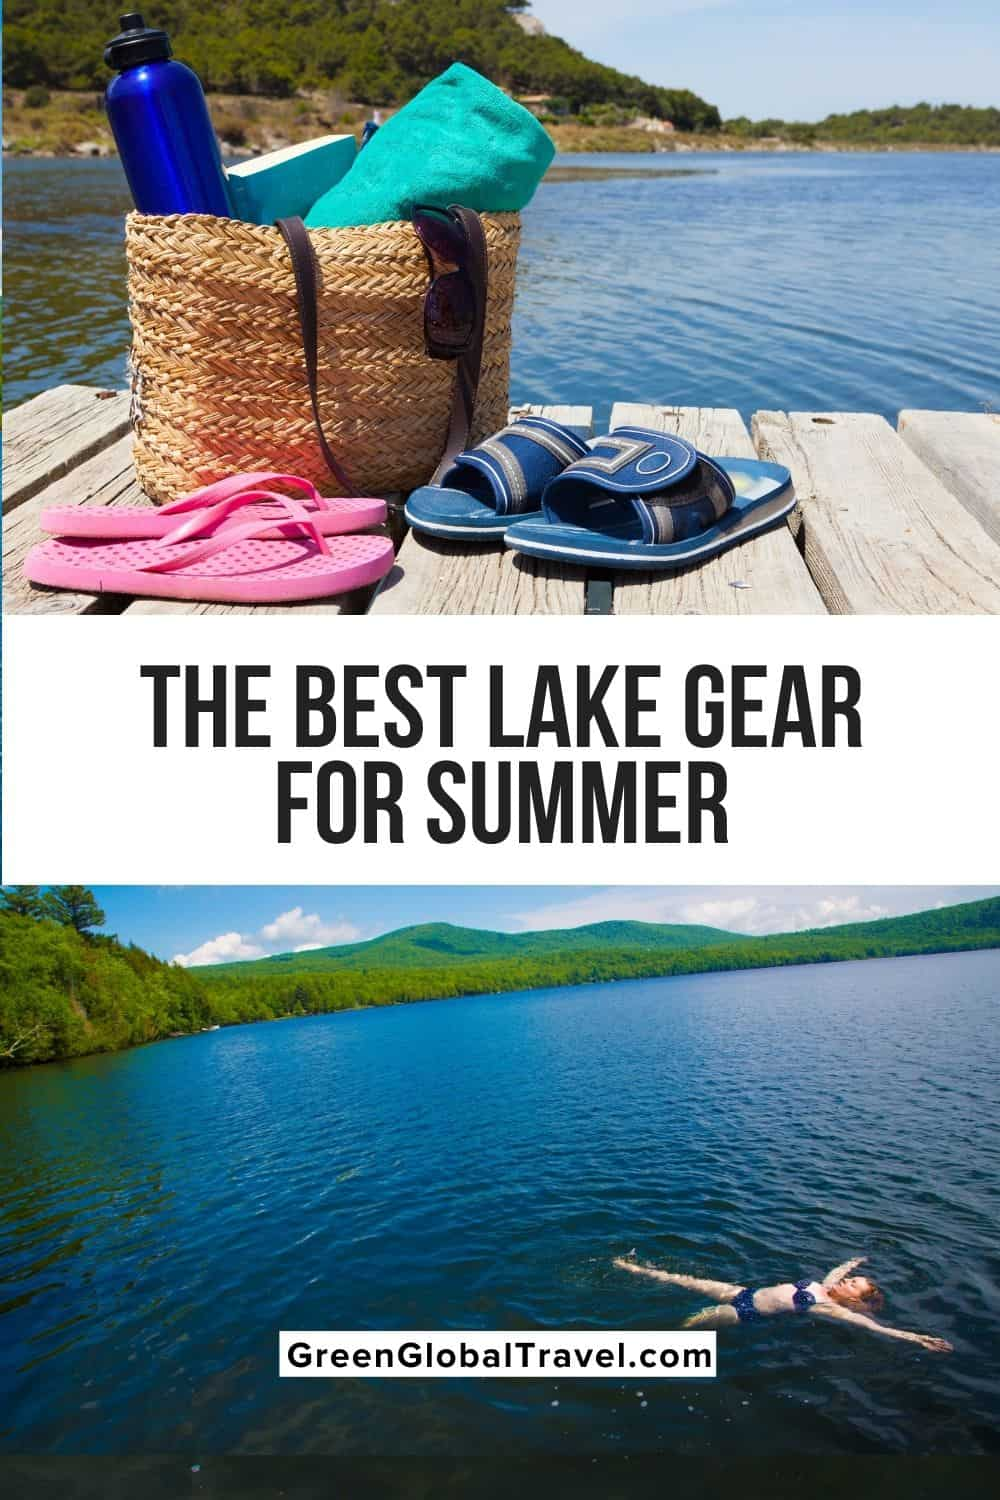 The Best Lake Day Gear & Accessories for Your Summer Outing includes Swimwear, Clothing, Floats, Sunglasses, Shoes, Camping/Cooking Gear, and Tech